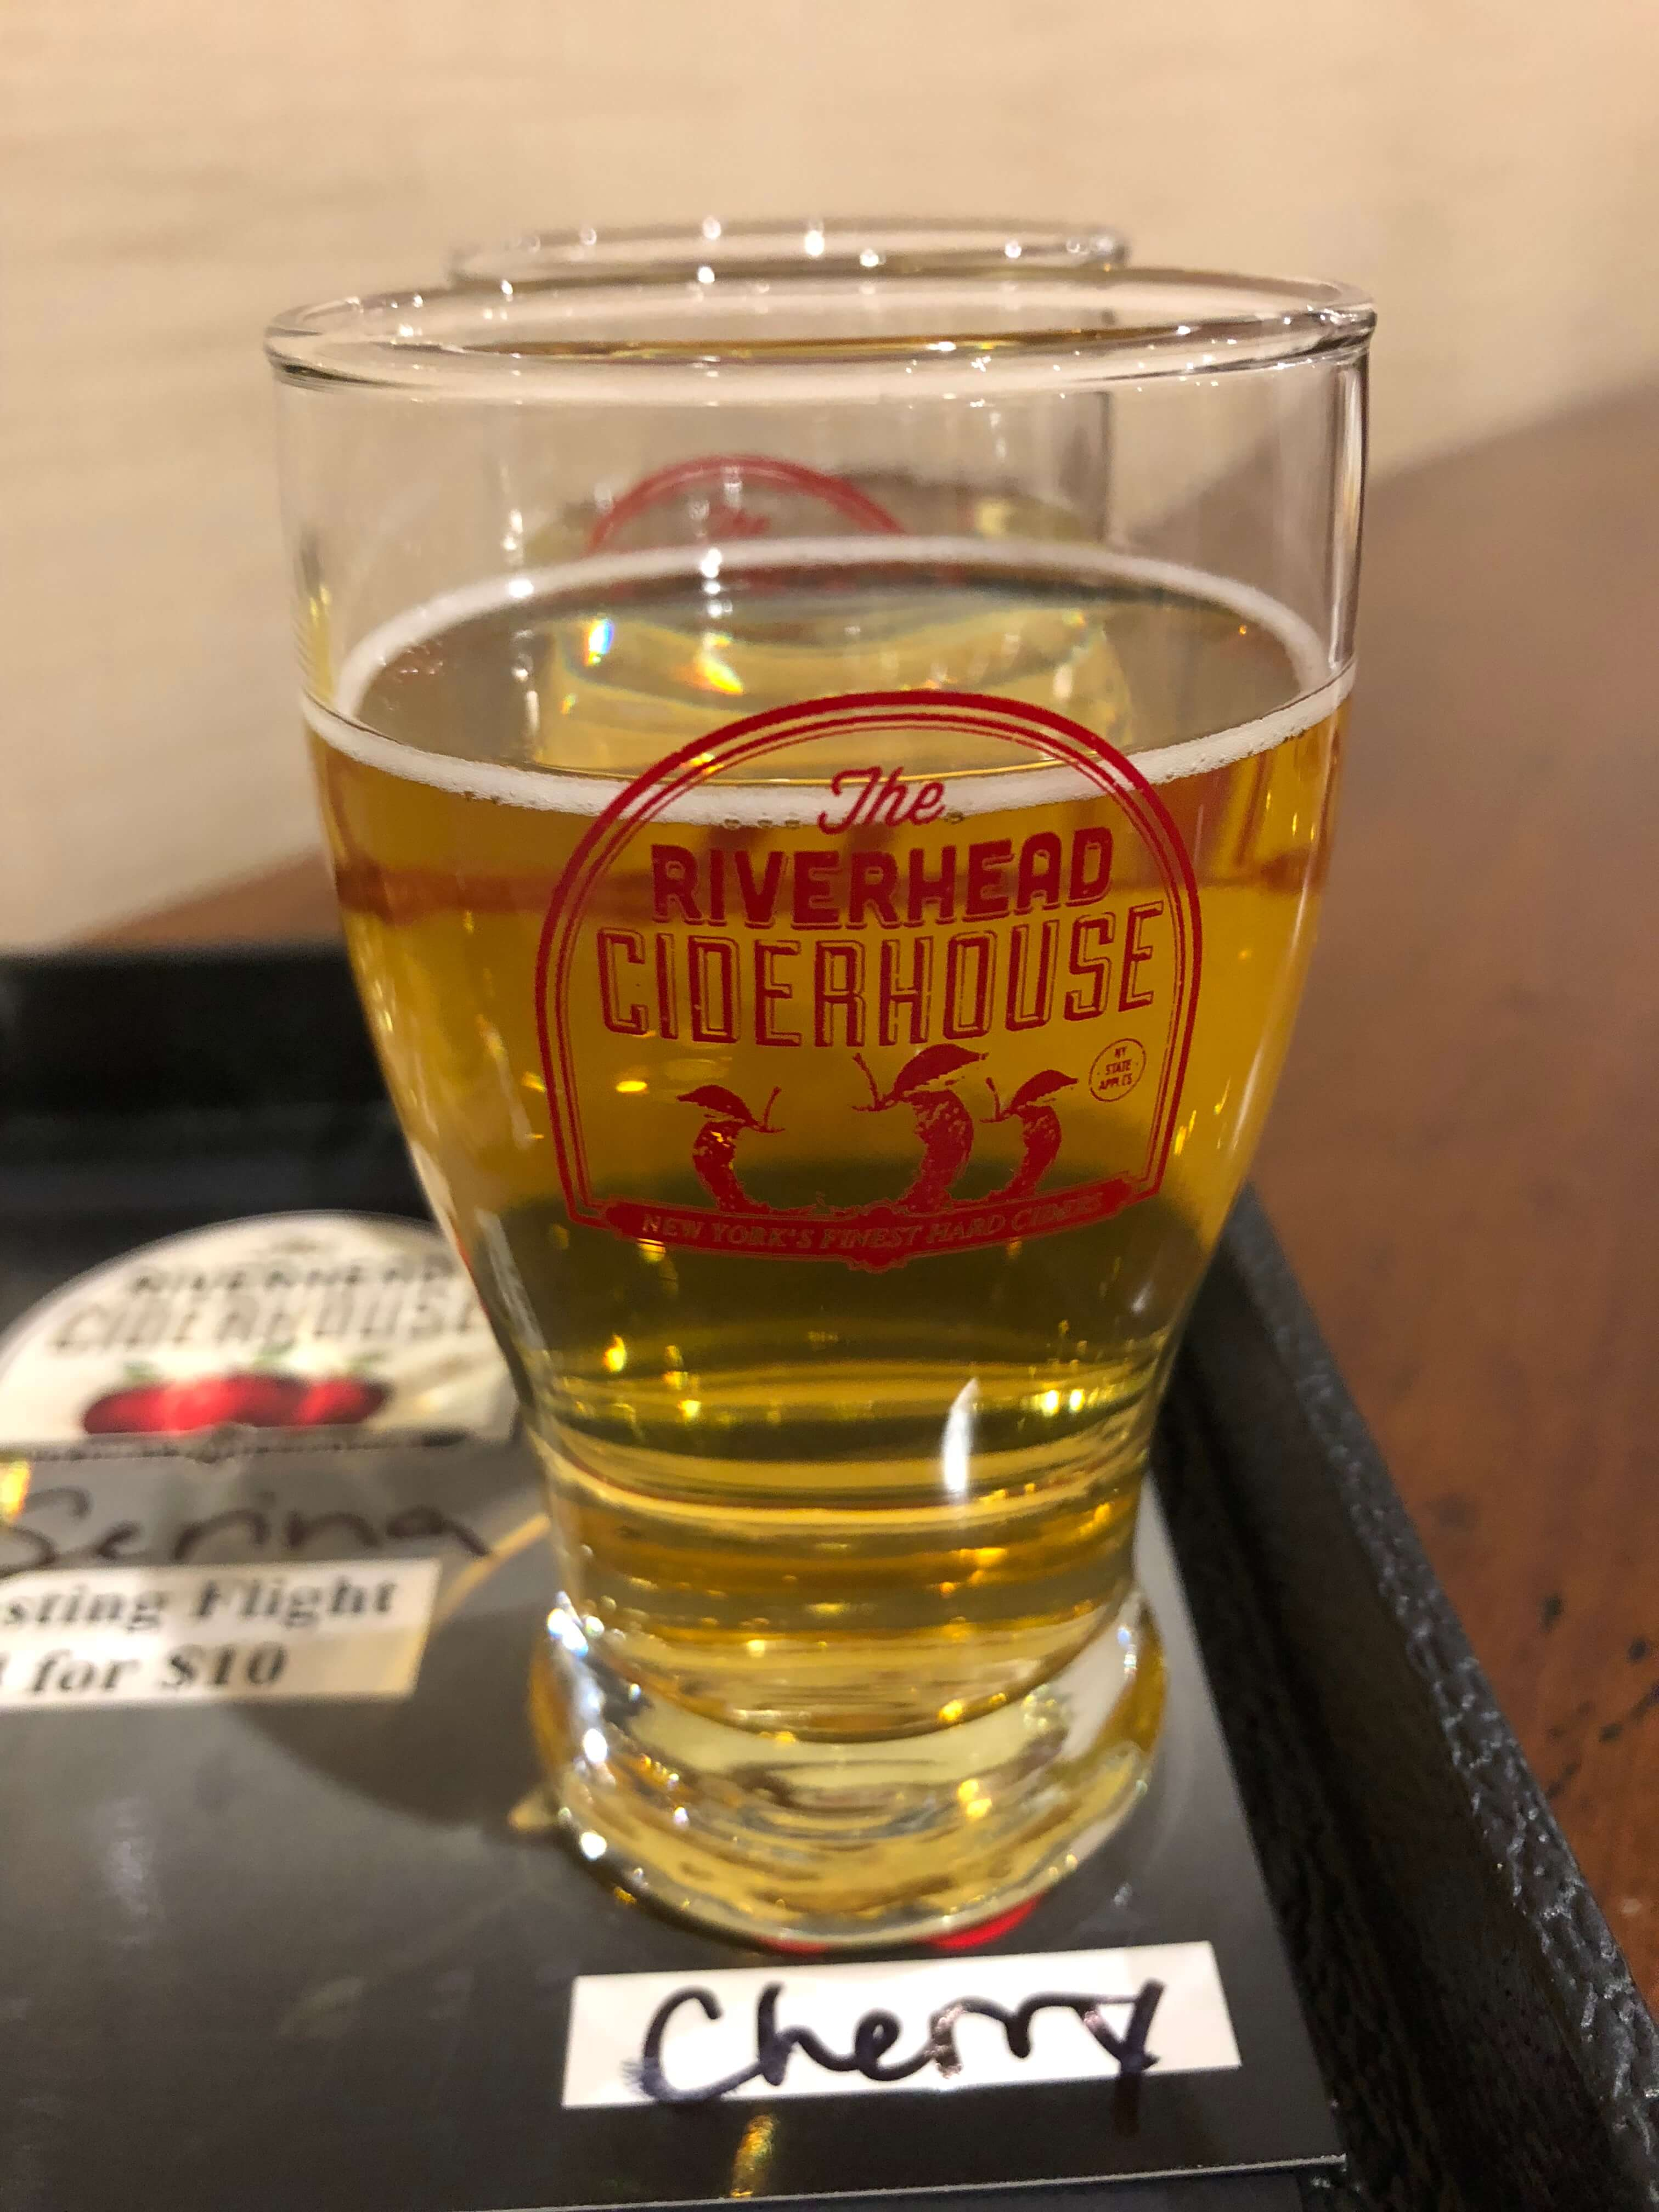 The Riverhead Ciderhouse north fork activities